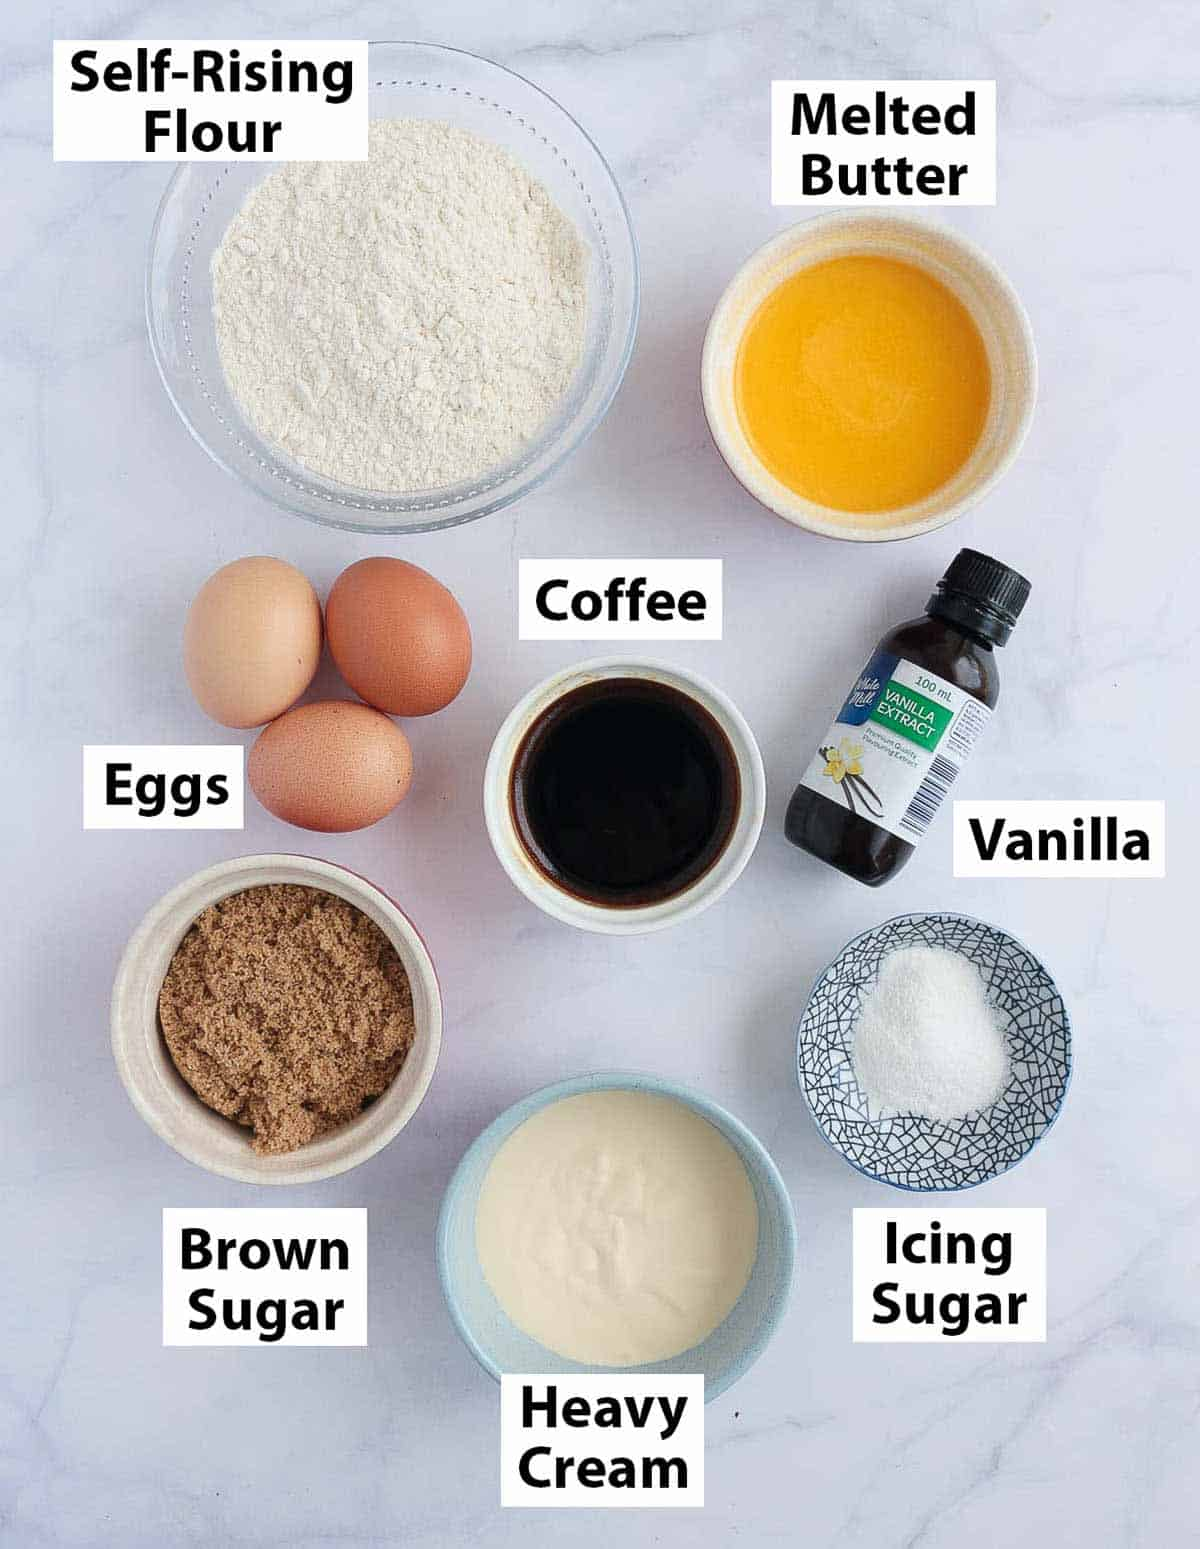 Ingredients placed on a marble surface.